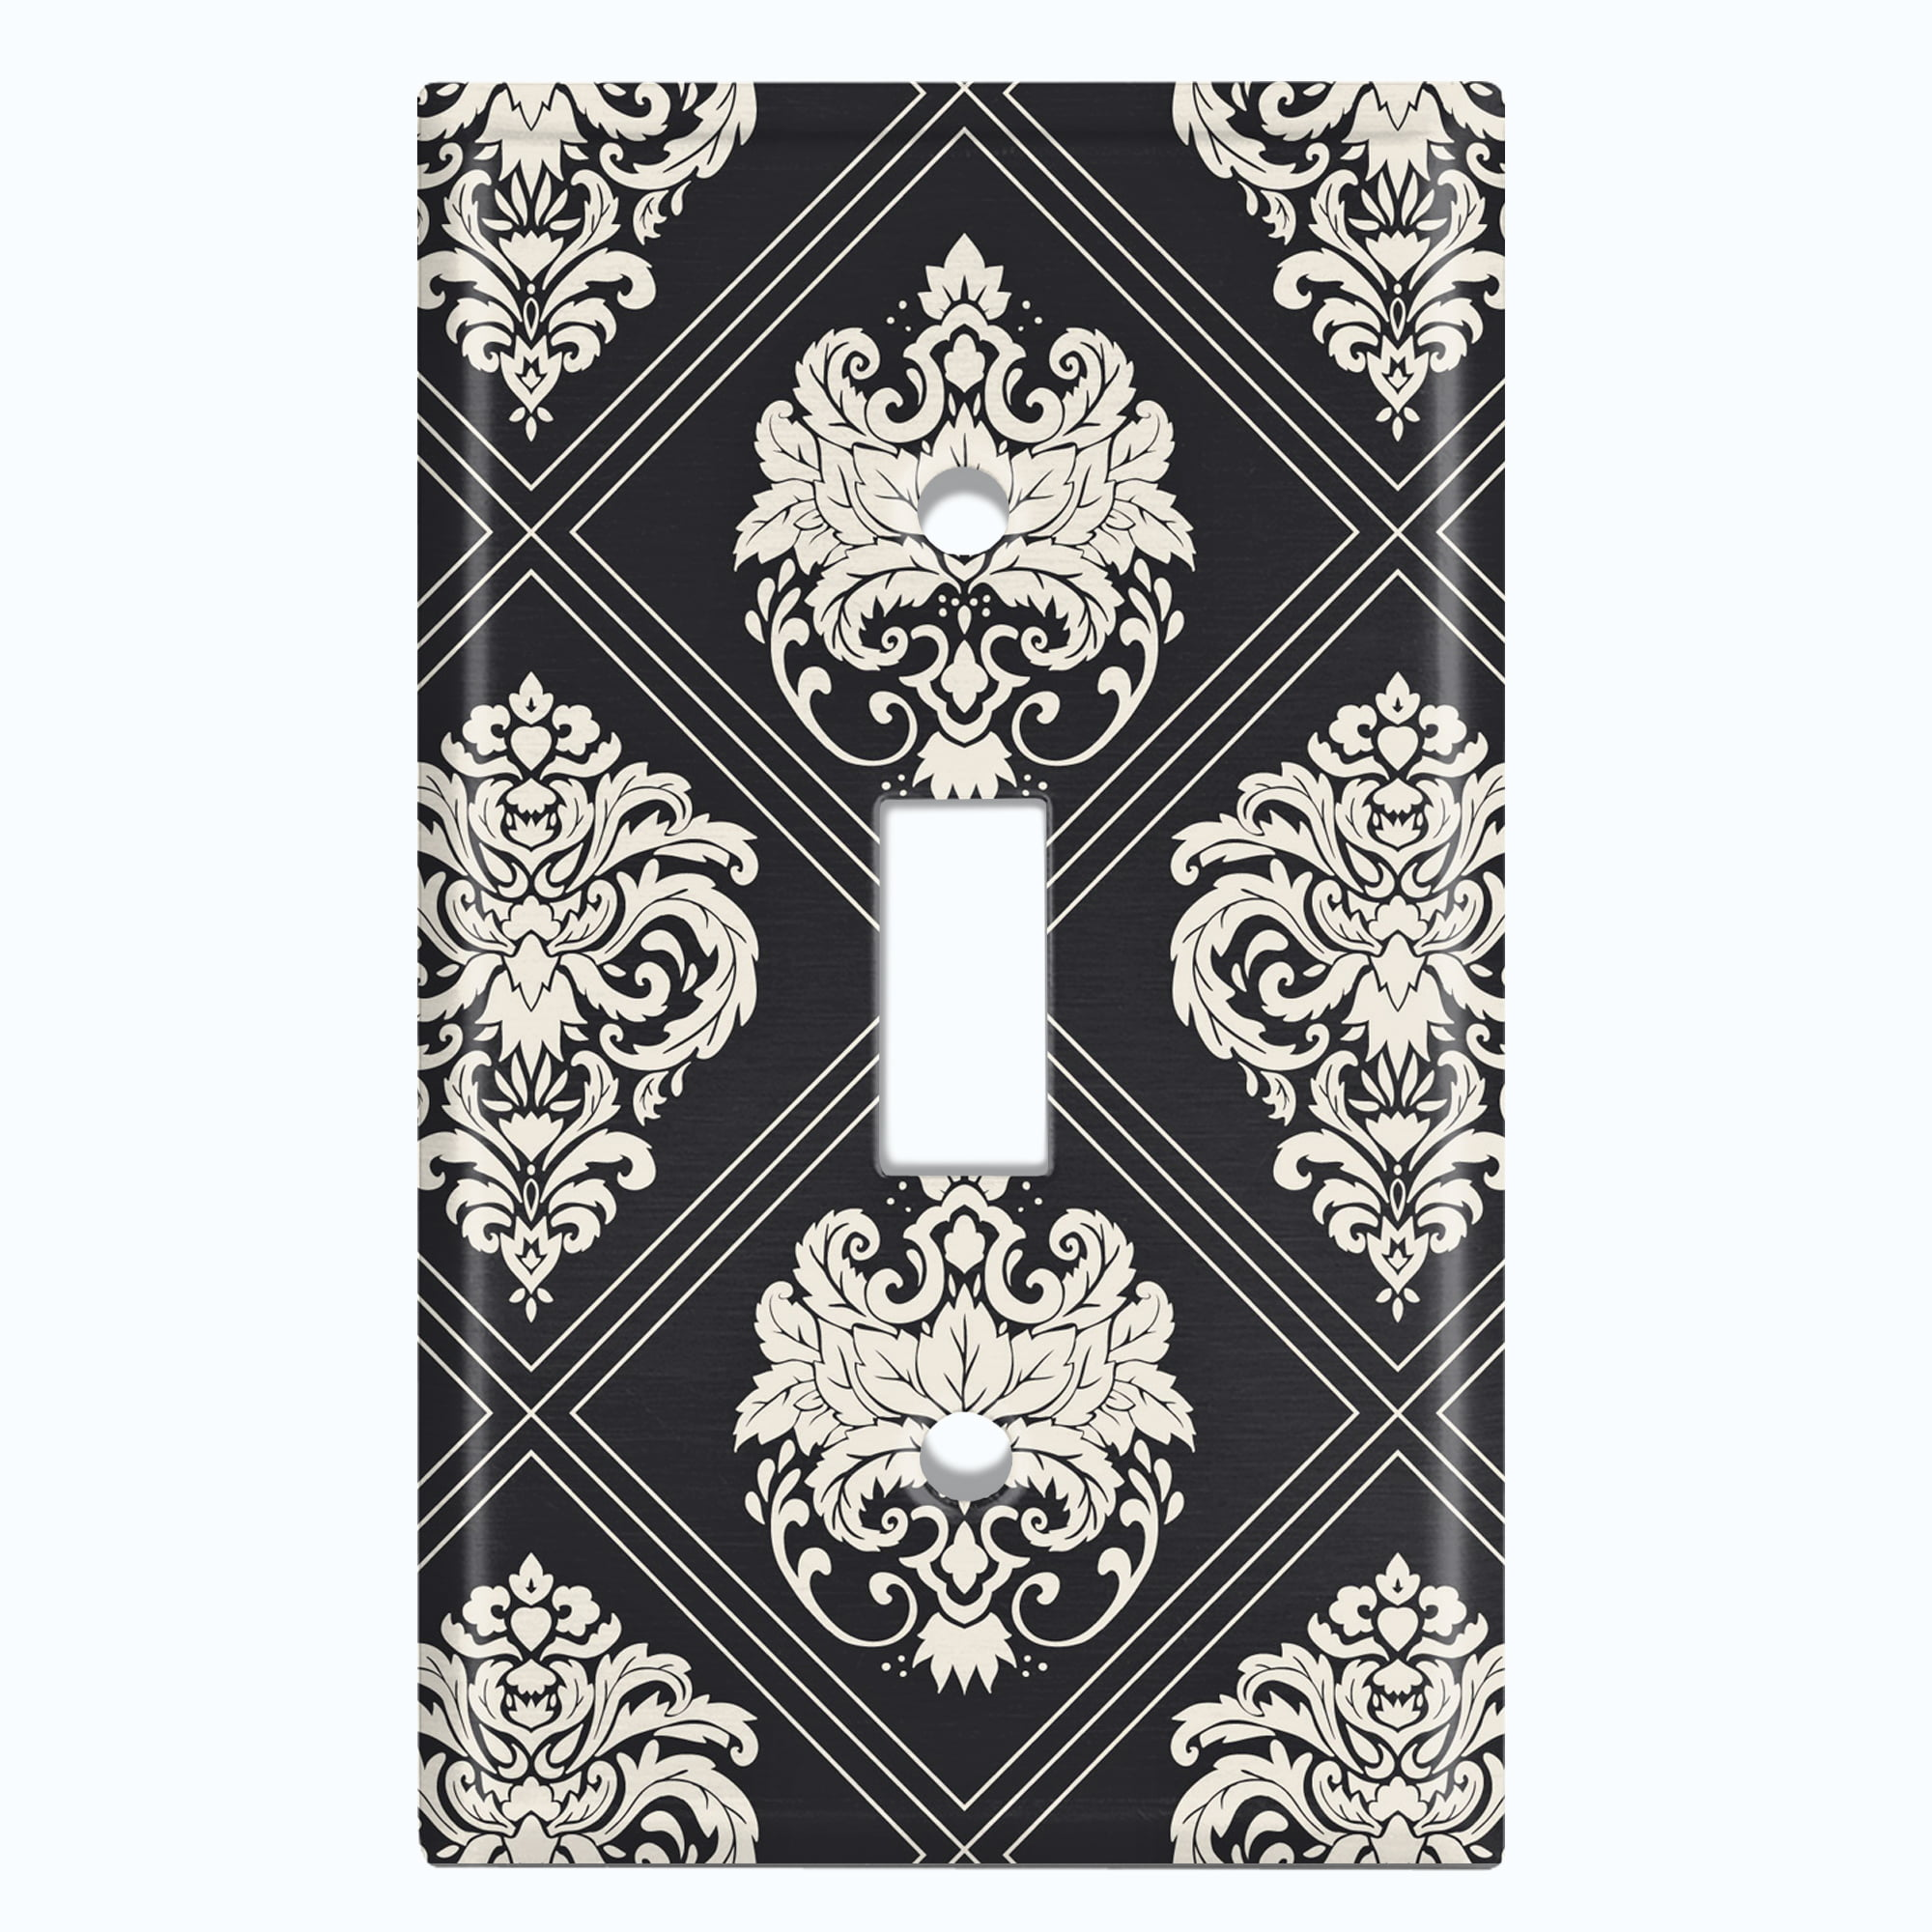 Metal Light Switch Plate Outlet Cover Damask Diamond Black Pattern Single Toggle Walmart Com Walmart Com